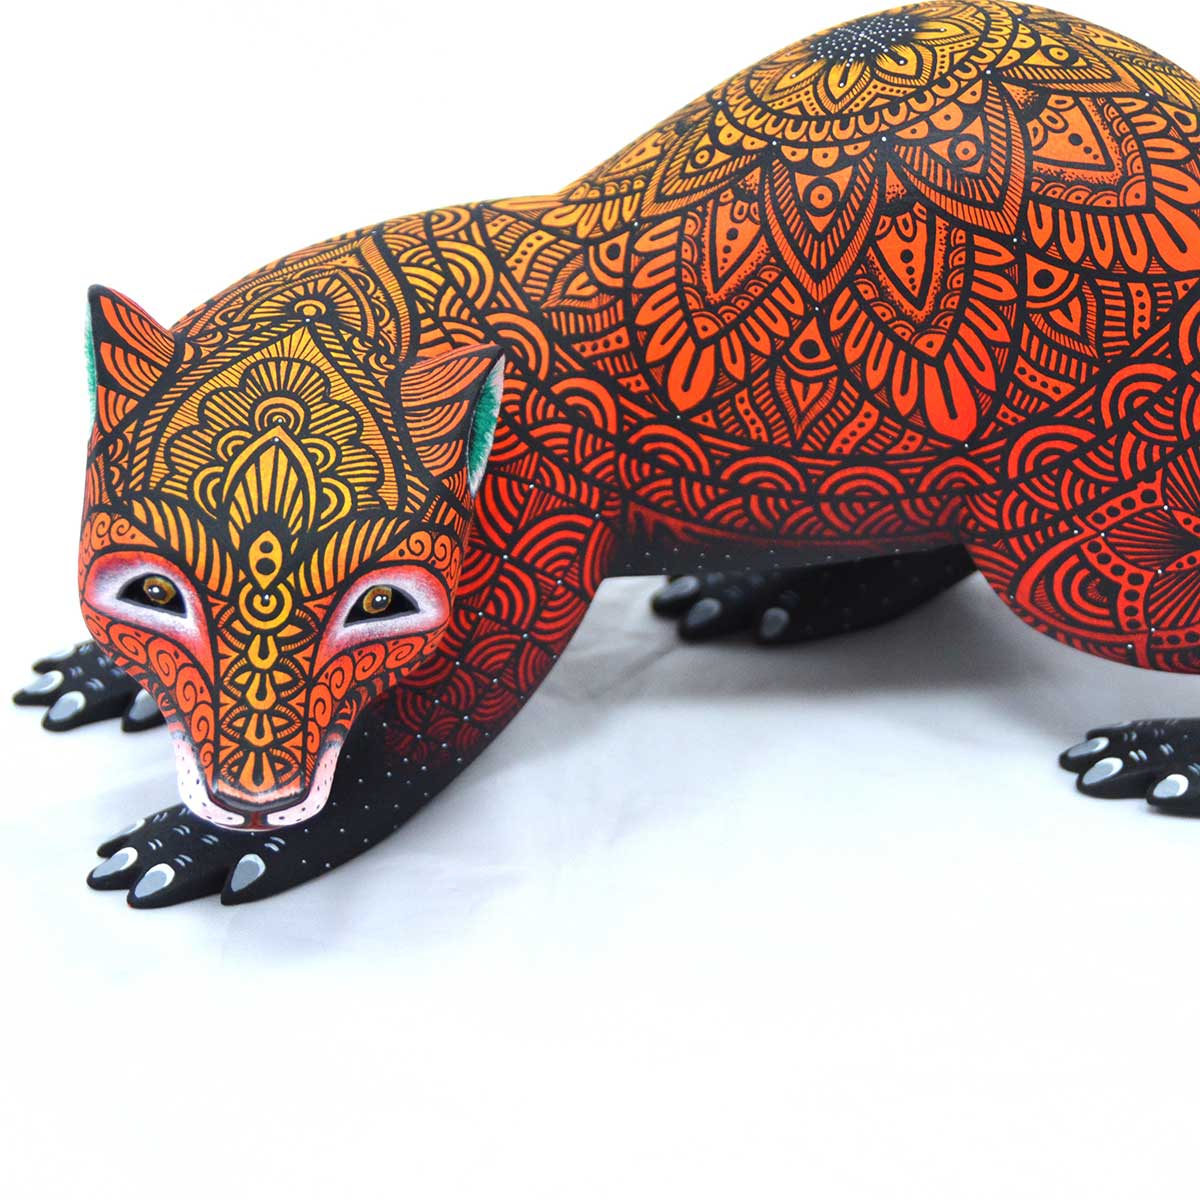 Oaxacan Wood Carving By Giovanni Melchor Oaxacan Wood Carving By Giovanni Melchor Oaxacan Wood Carving By Giovanni Melchor Oaxacan Wood Carving By Giovanni Melchor Oaxacan Wood Carving By Giovanni Melchor Oaxacan Wood Carving By Giovanni Melchor